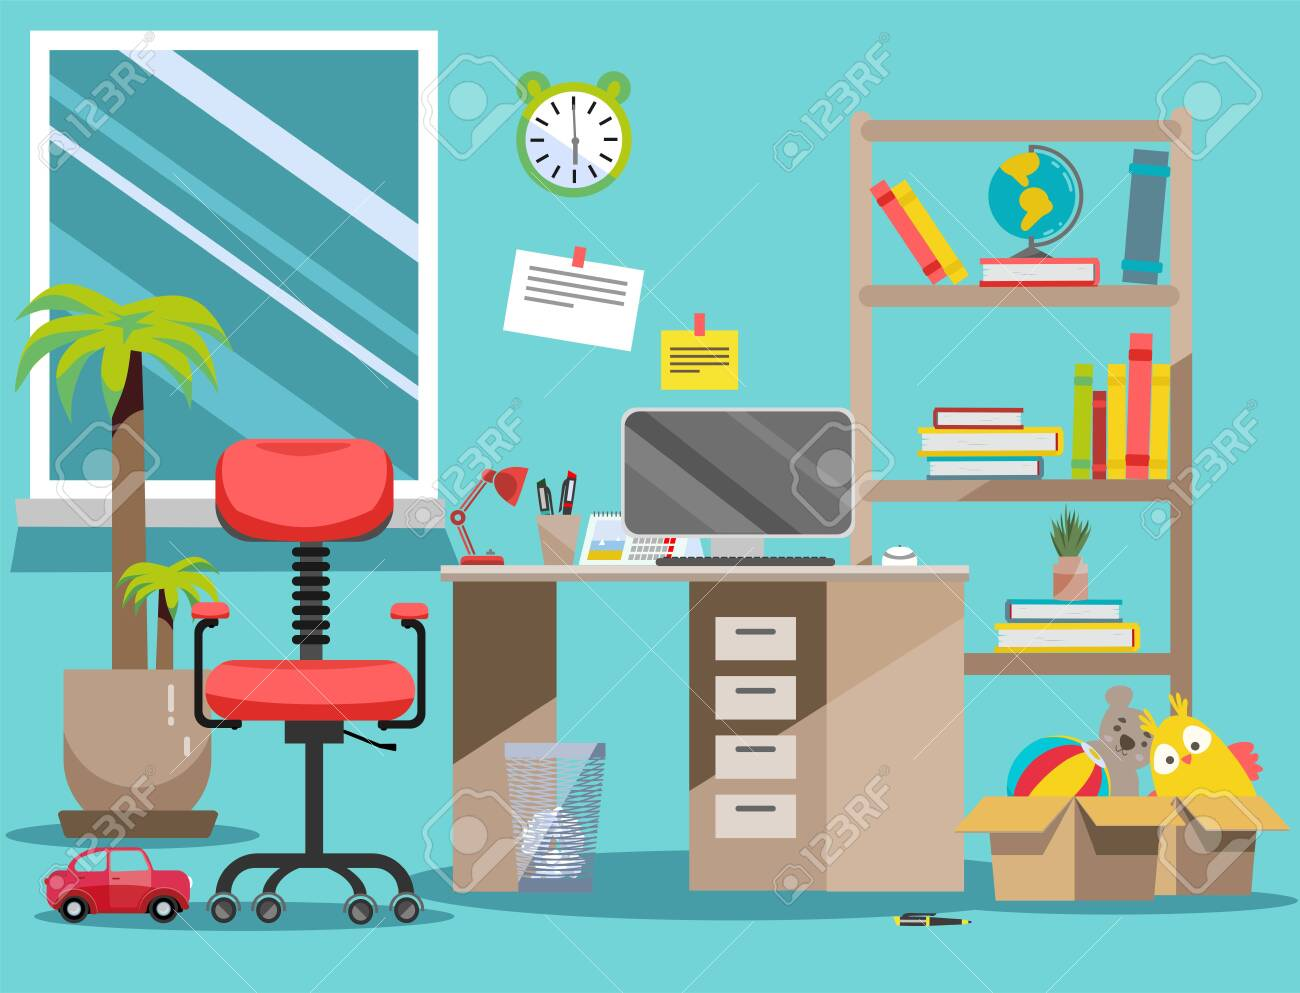 Interior nursery. Boys room with table, computer, bookshelf,toys in boxes. Flat cartoon vector illustration.Cozy interior of childrens room with toys, furniture, window. Teenager room with workplace - 121999699